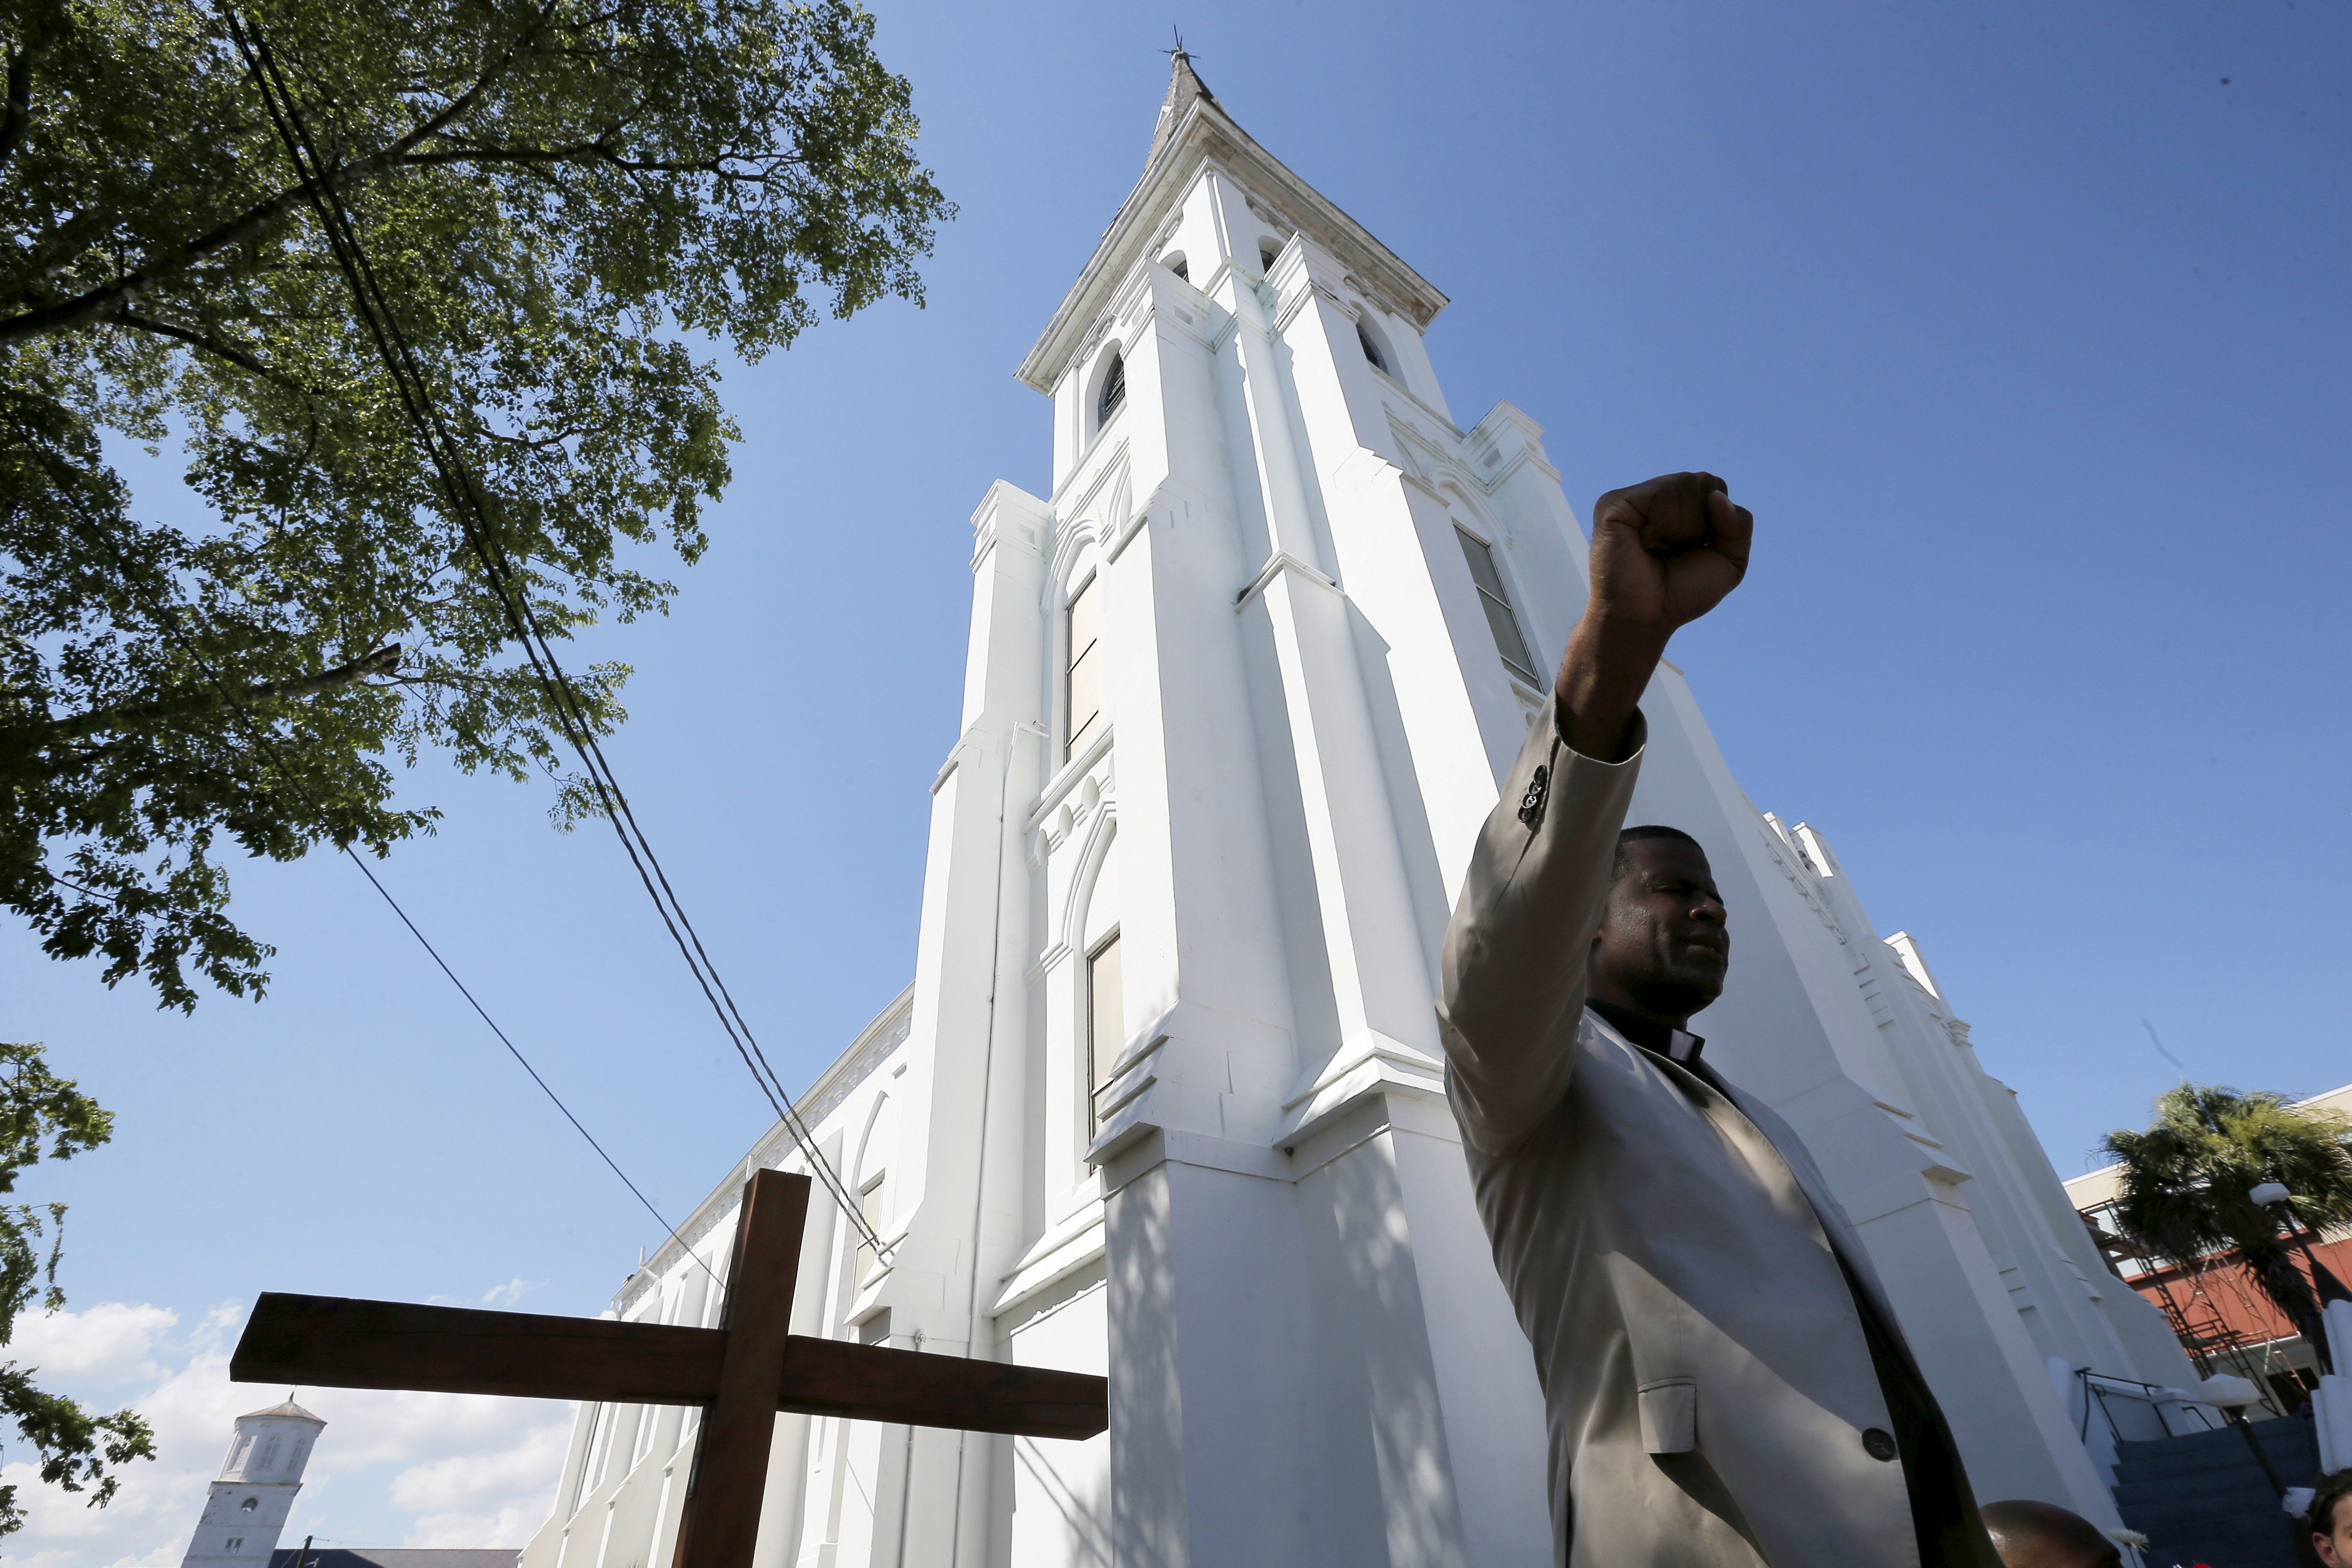 Reverend Dimas Salaberrios leads prayers outside the Emanuel African Methodist Episcopal Church, where a mass shooting took place, in Charleston, South Carolina June 20, 2015. Mourners arrived in Charleston from around the United States on Saturday to pay their respects to nine black churchgoers killed in the attack this week, with services planned throughout the day ahead of a rally in the state capital later in the evening. REUTERS/Brian Snyder